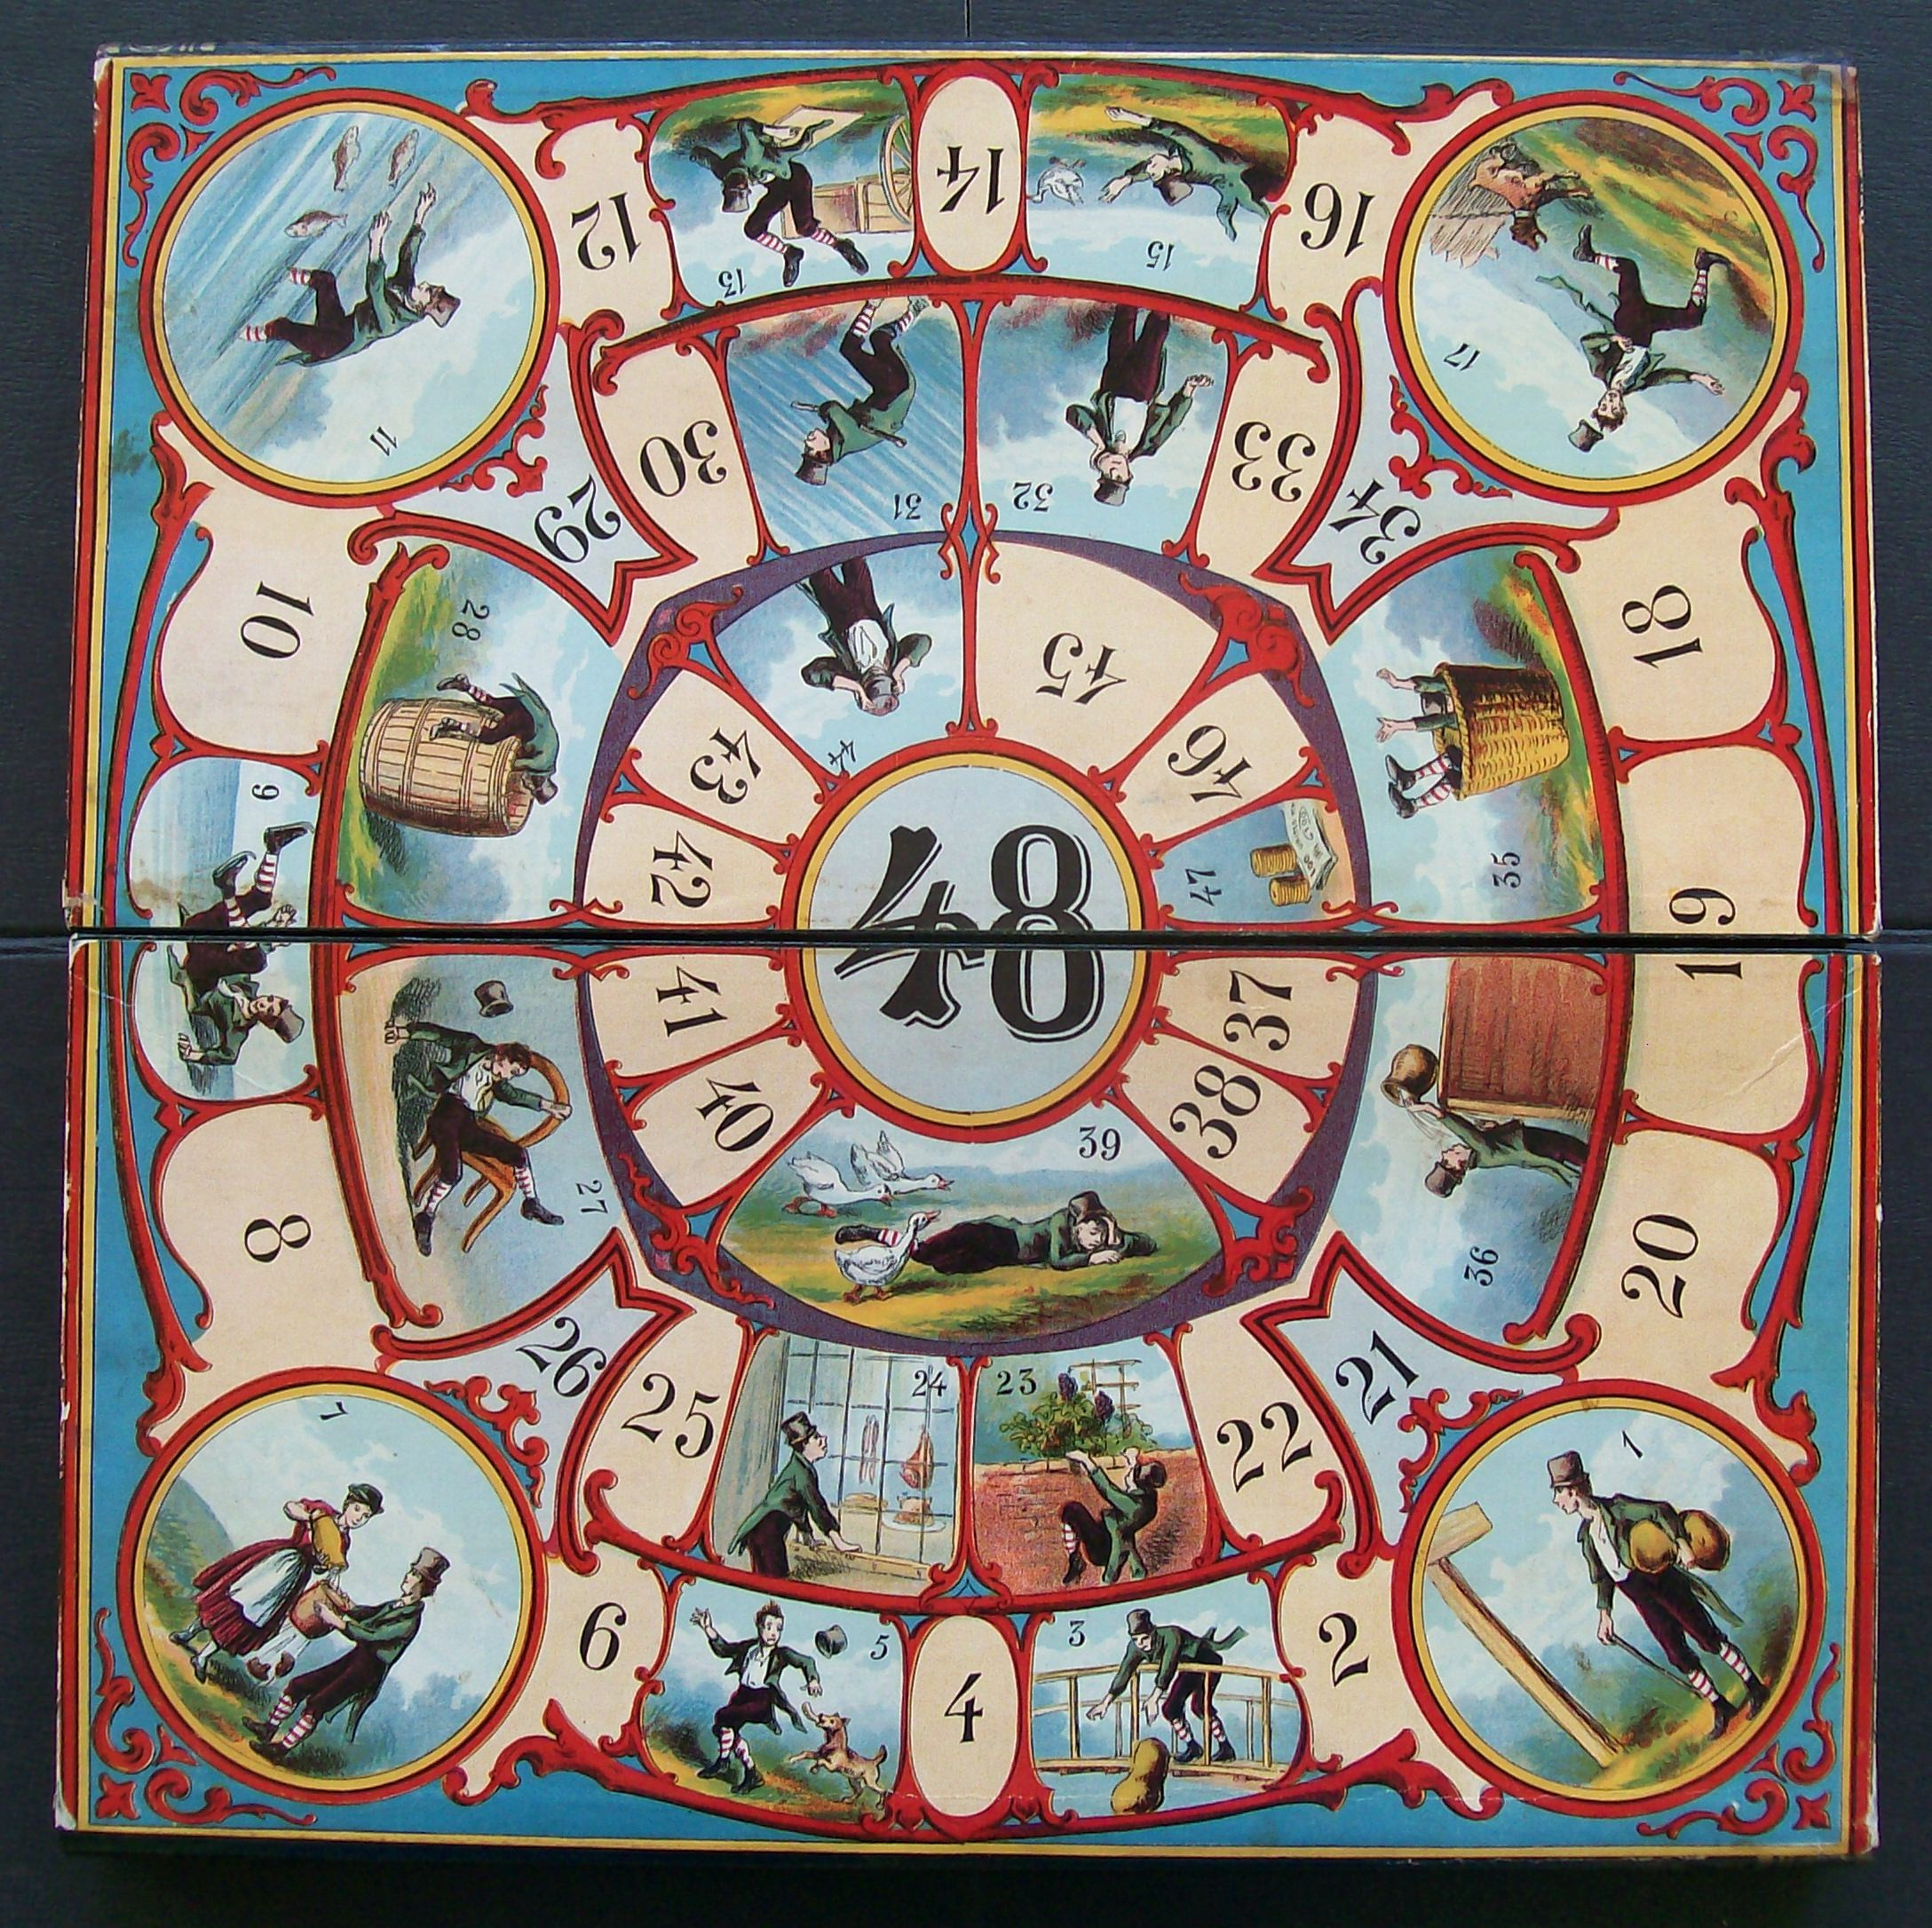 1875 mcloughlin bros. game board life's mishaps